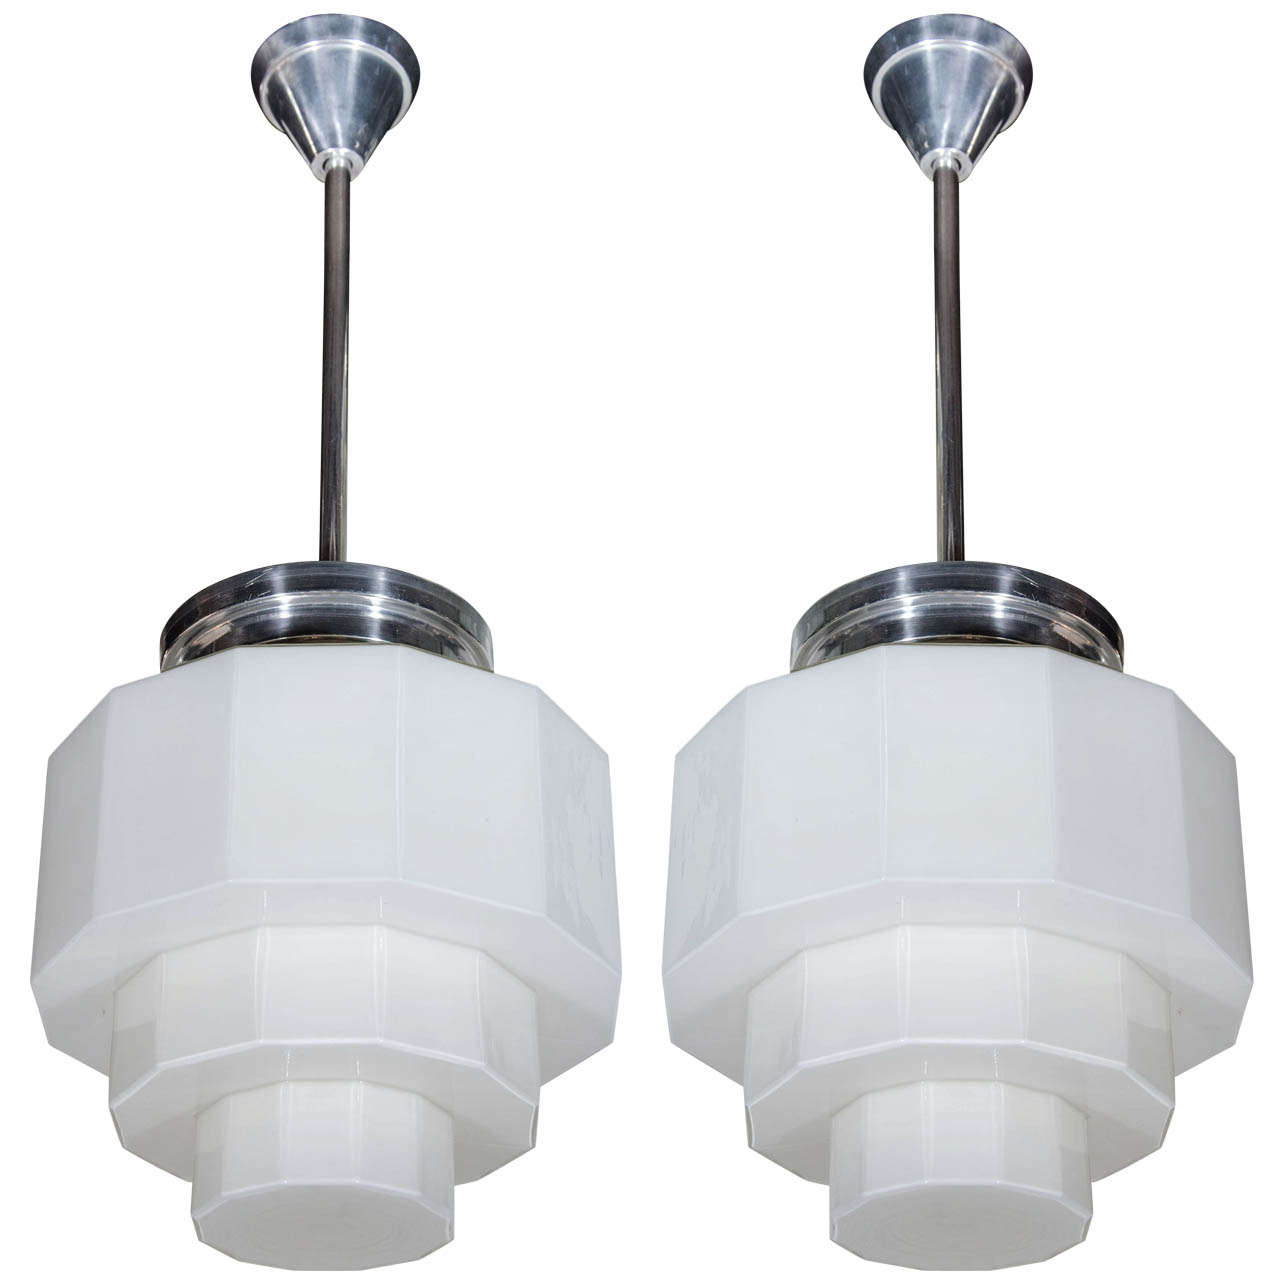 Pair of art deco chandeliers with skyscraper opaline glass design for sale